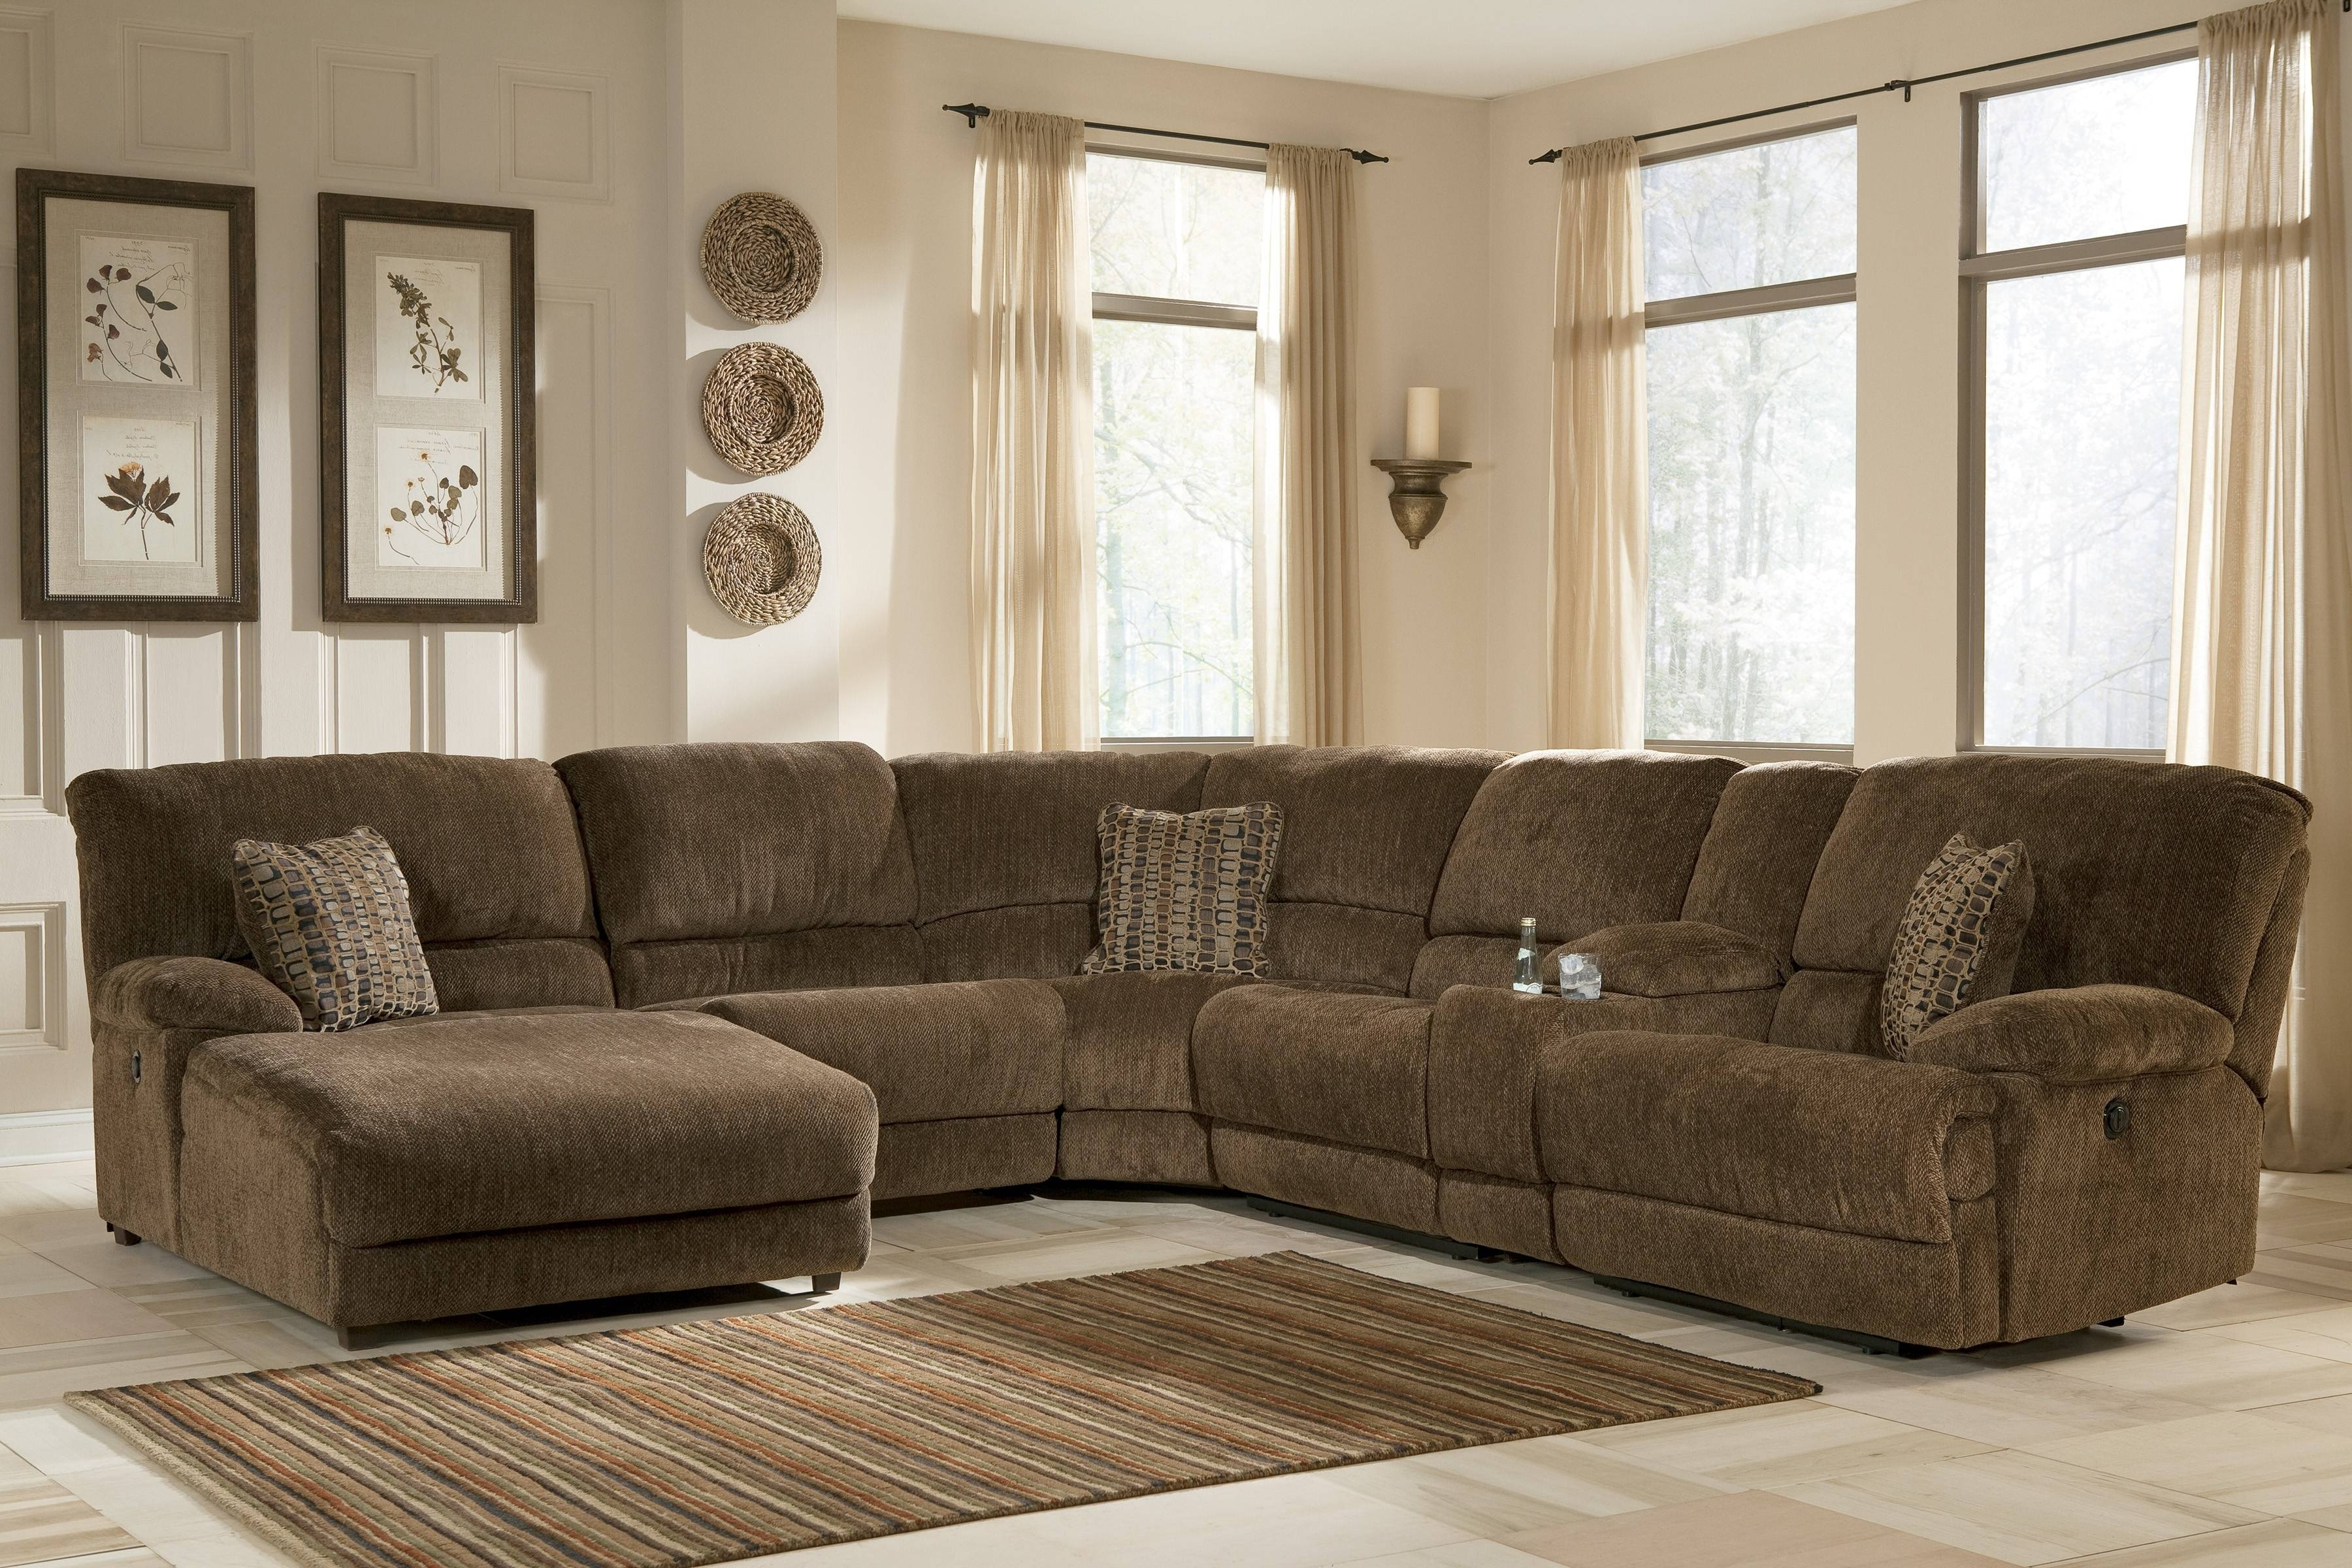 Chair & Sofa: Have An Interesting Living Room With Ashley throughout 6 Piece Leather Sectional Sofa (Image 11 of 30)